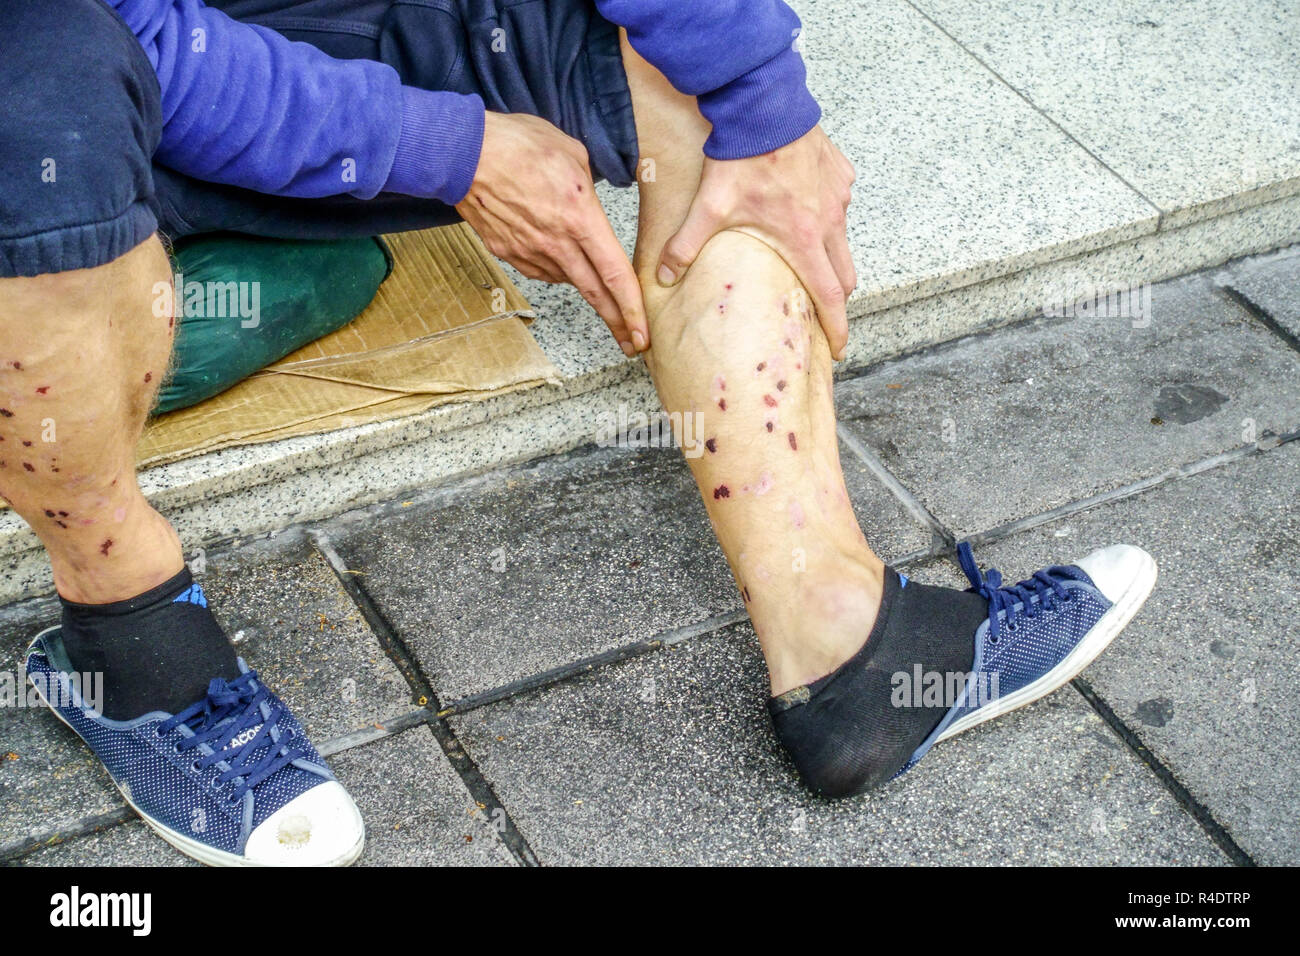 drug addict, bloody scabs after injection on skin, legs Stock Photo